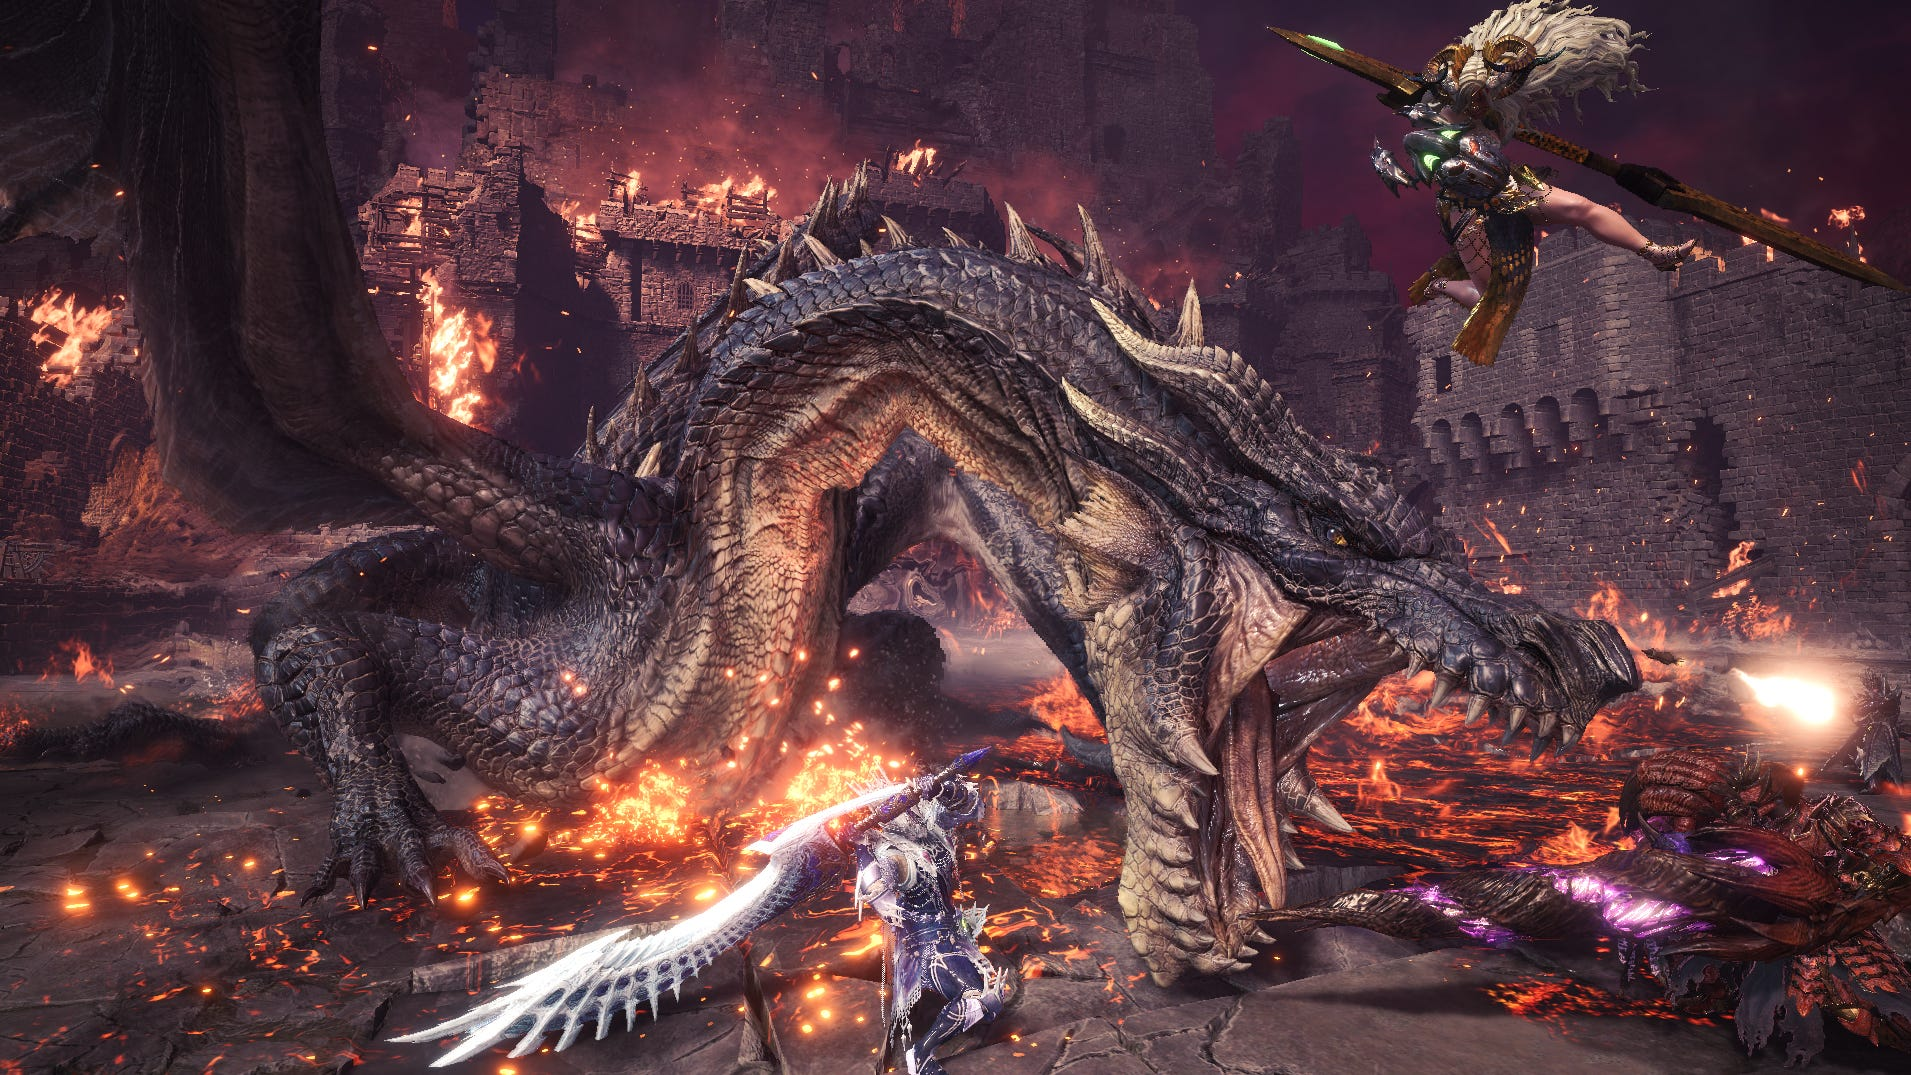 How To Beat Fatalis A Step By Step Guide Monster Hunter World Iceborne Play multiplayer games for free on y0.com! monster hunter world iceborne